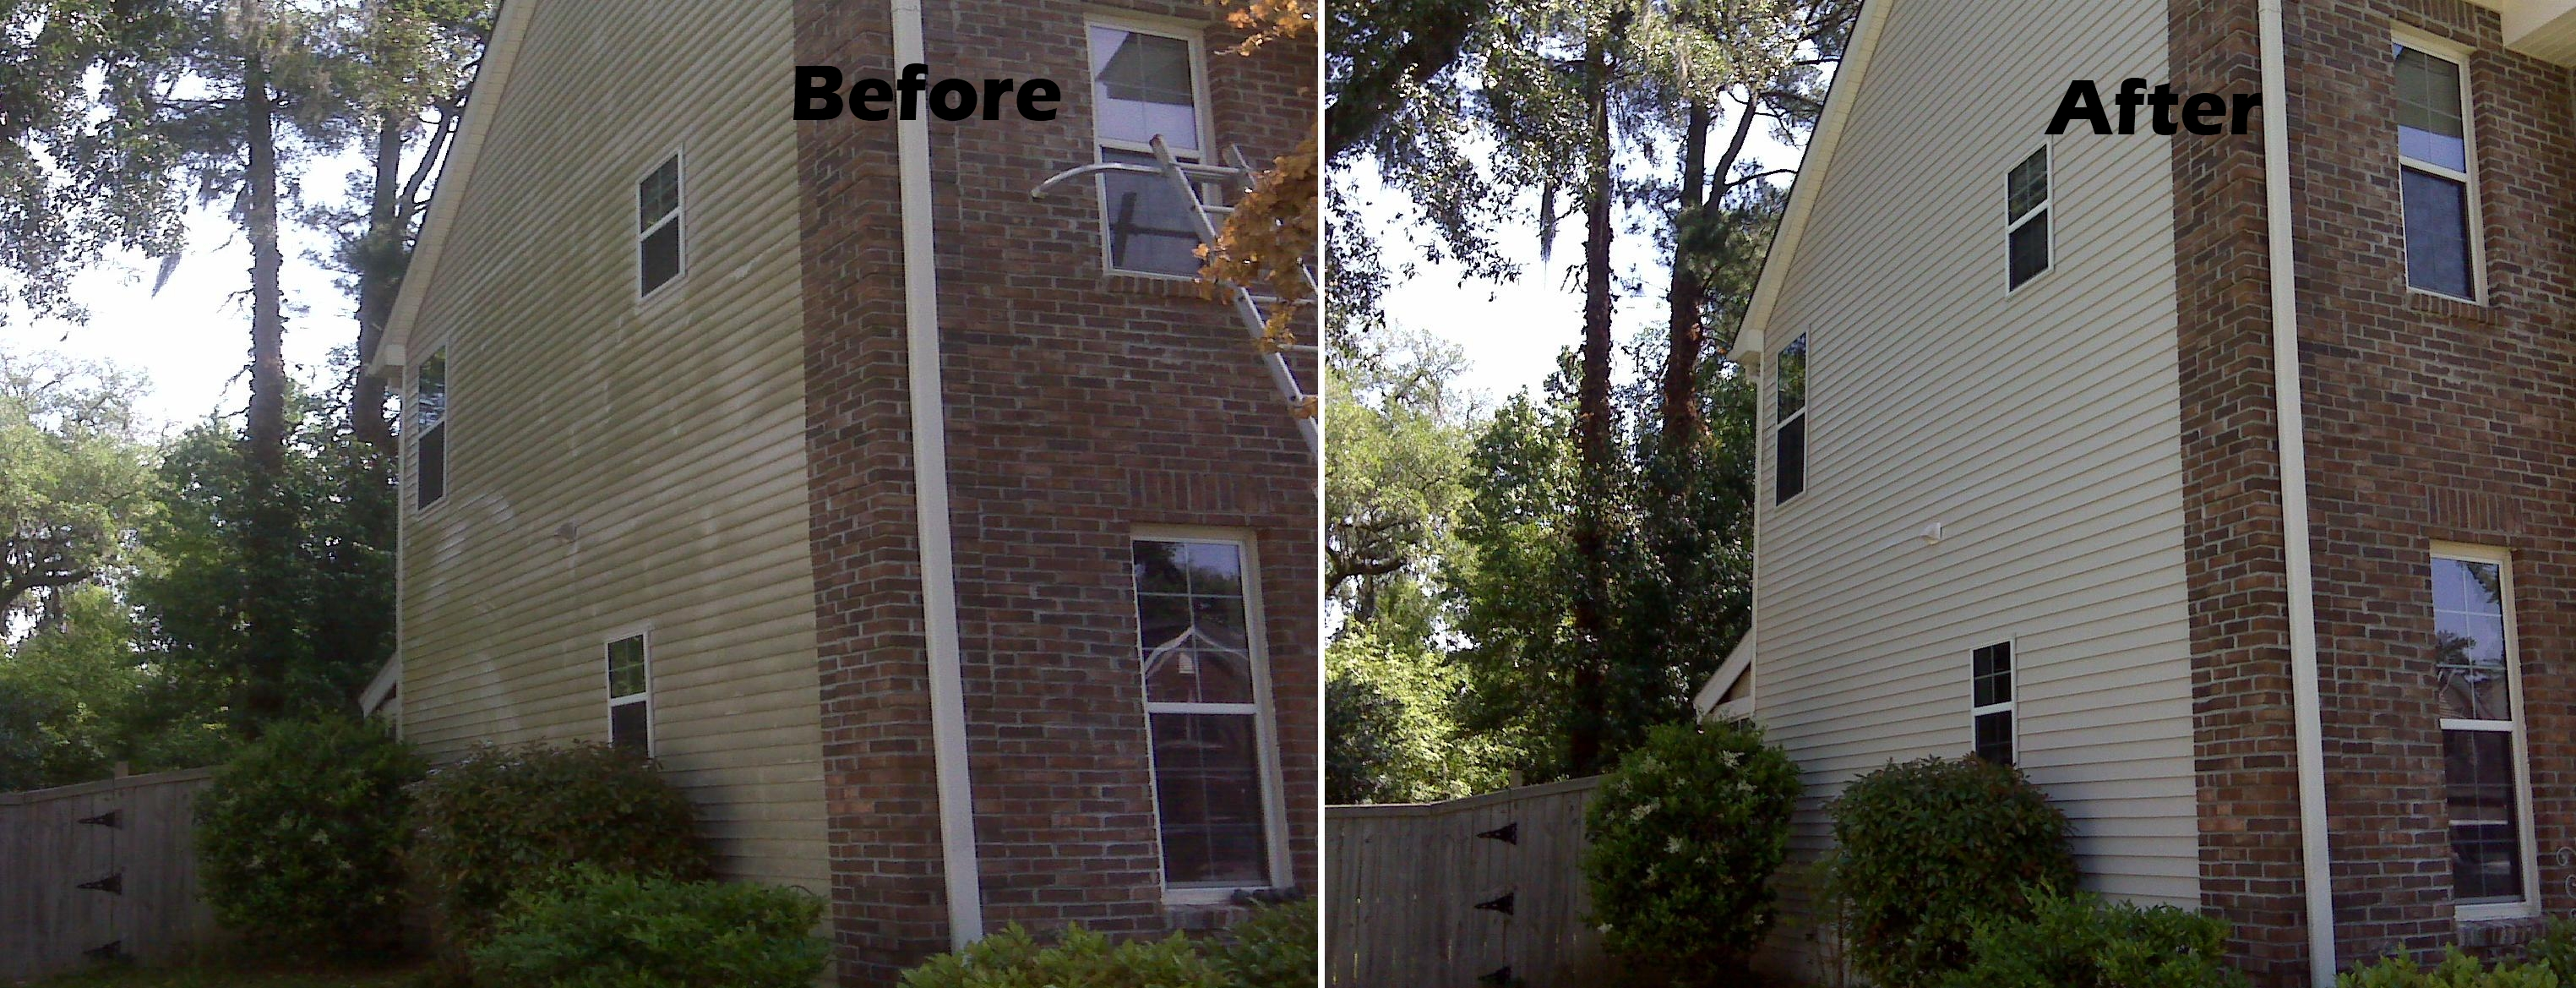 Pressure Washing Company Charleston Sc 843 608 9070 Washer Pressure Washing L Charleston L